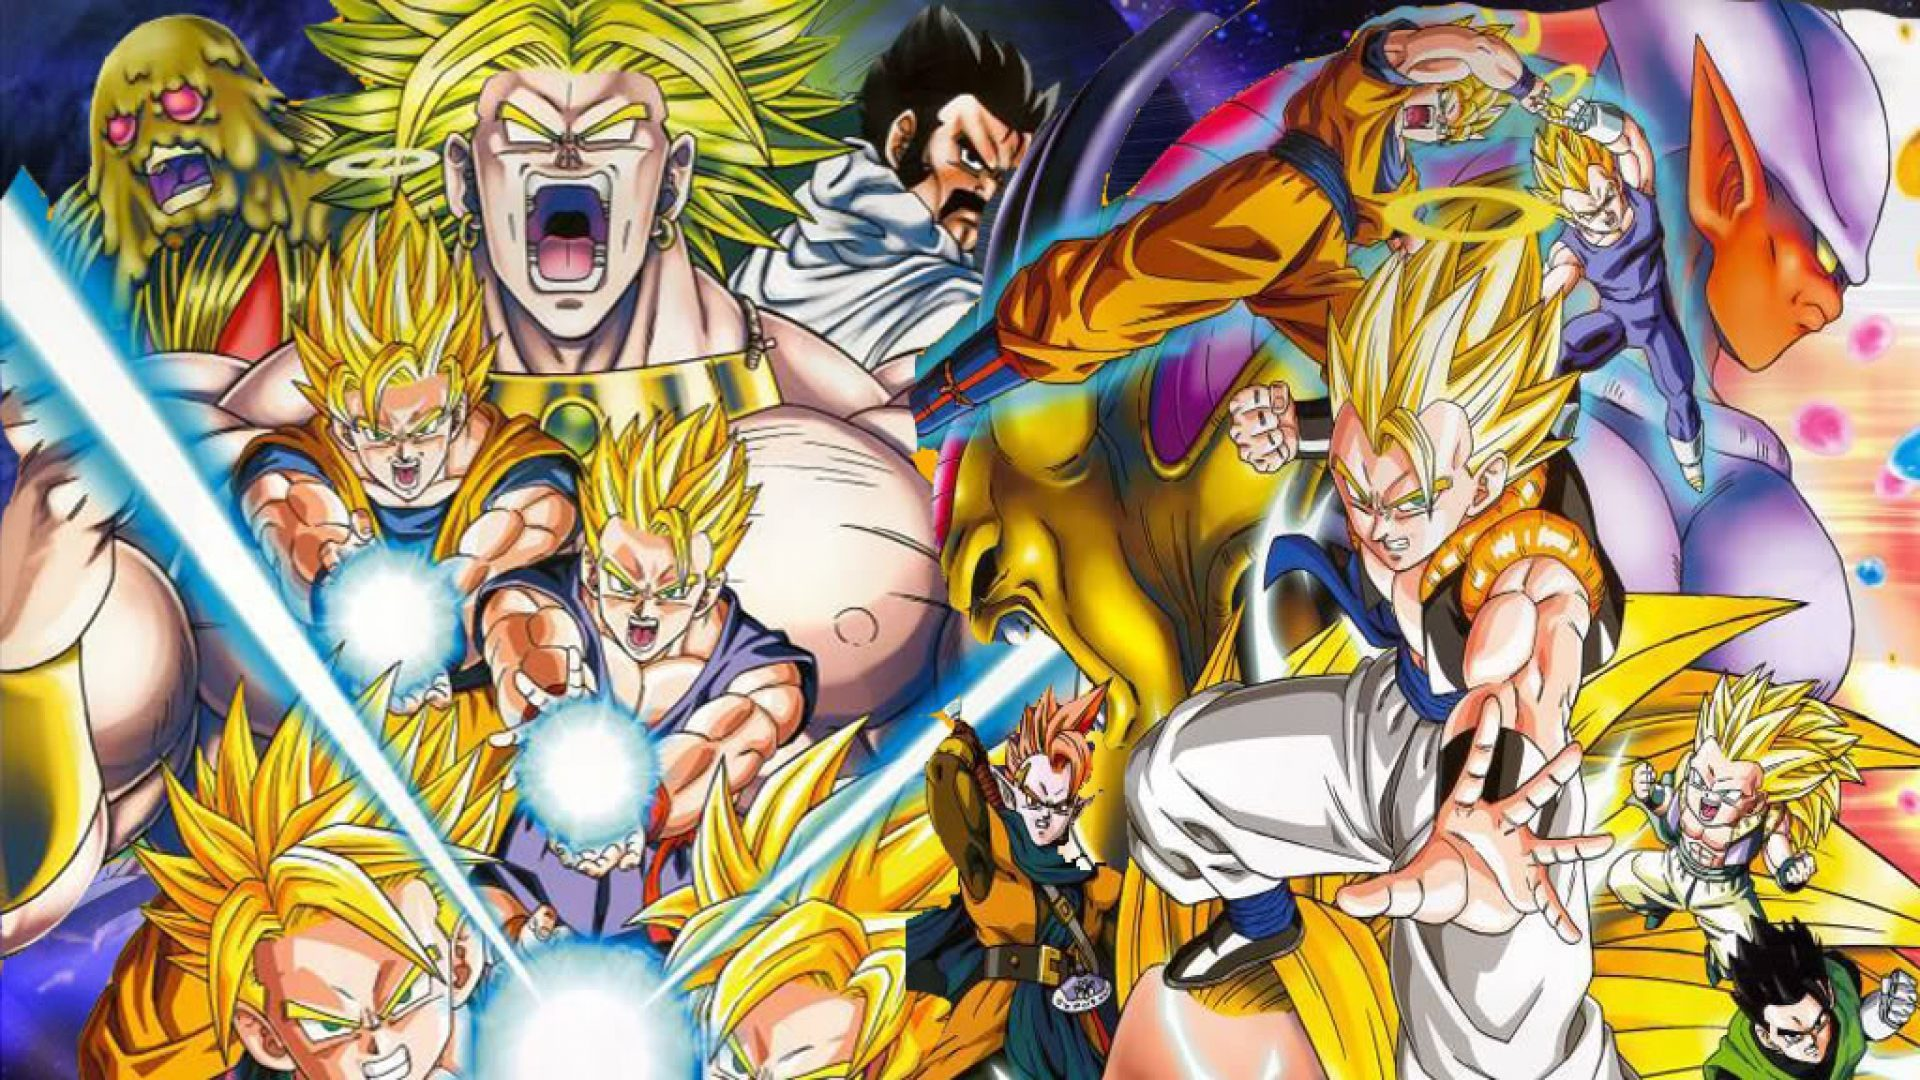 Súper guerreros de Dragon Ball Z - 1920x1080